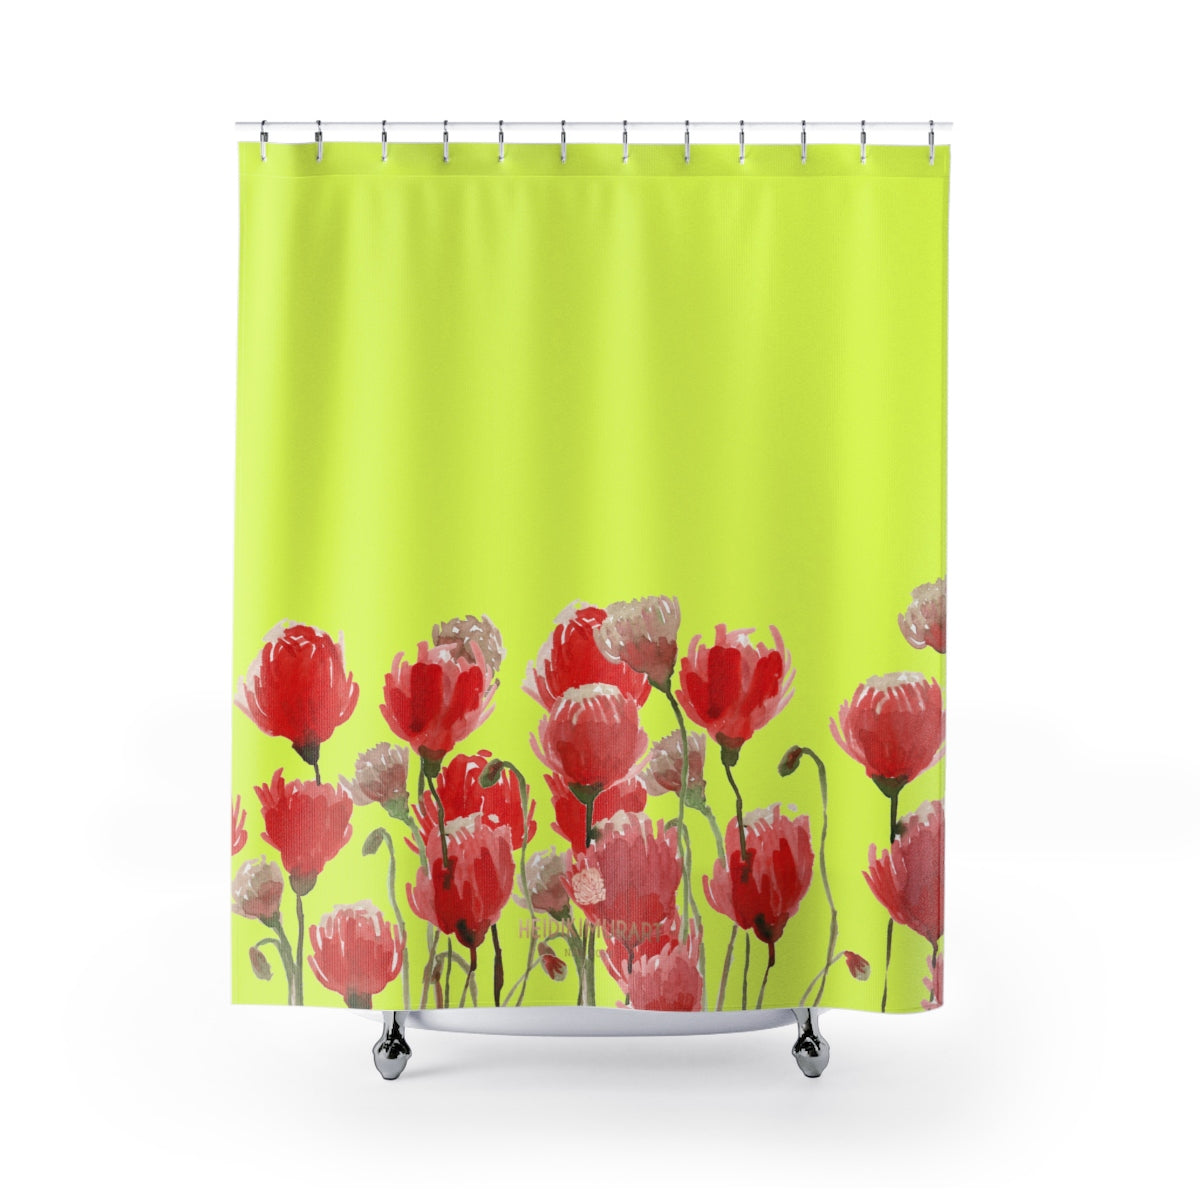 "Yellow Red Poppy Flower Floral Print Designer Polyester Shower Curtains- Made in USA-Shower Curtain-71"" x 74""-Heidi Kimura Art LLC Yellow Red Poppy Bath Curtains, Yellow Red Poppy Flower Floral Print Designer Polyester Shower Curtains- Printed in USA, Premium Bathroom Shower Curtains Home Decor Large 100% Polyester 71x74 inches"